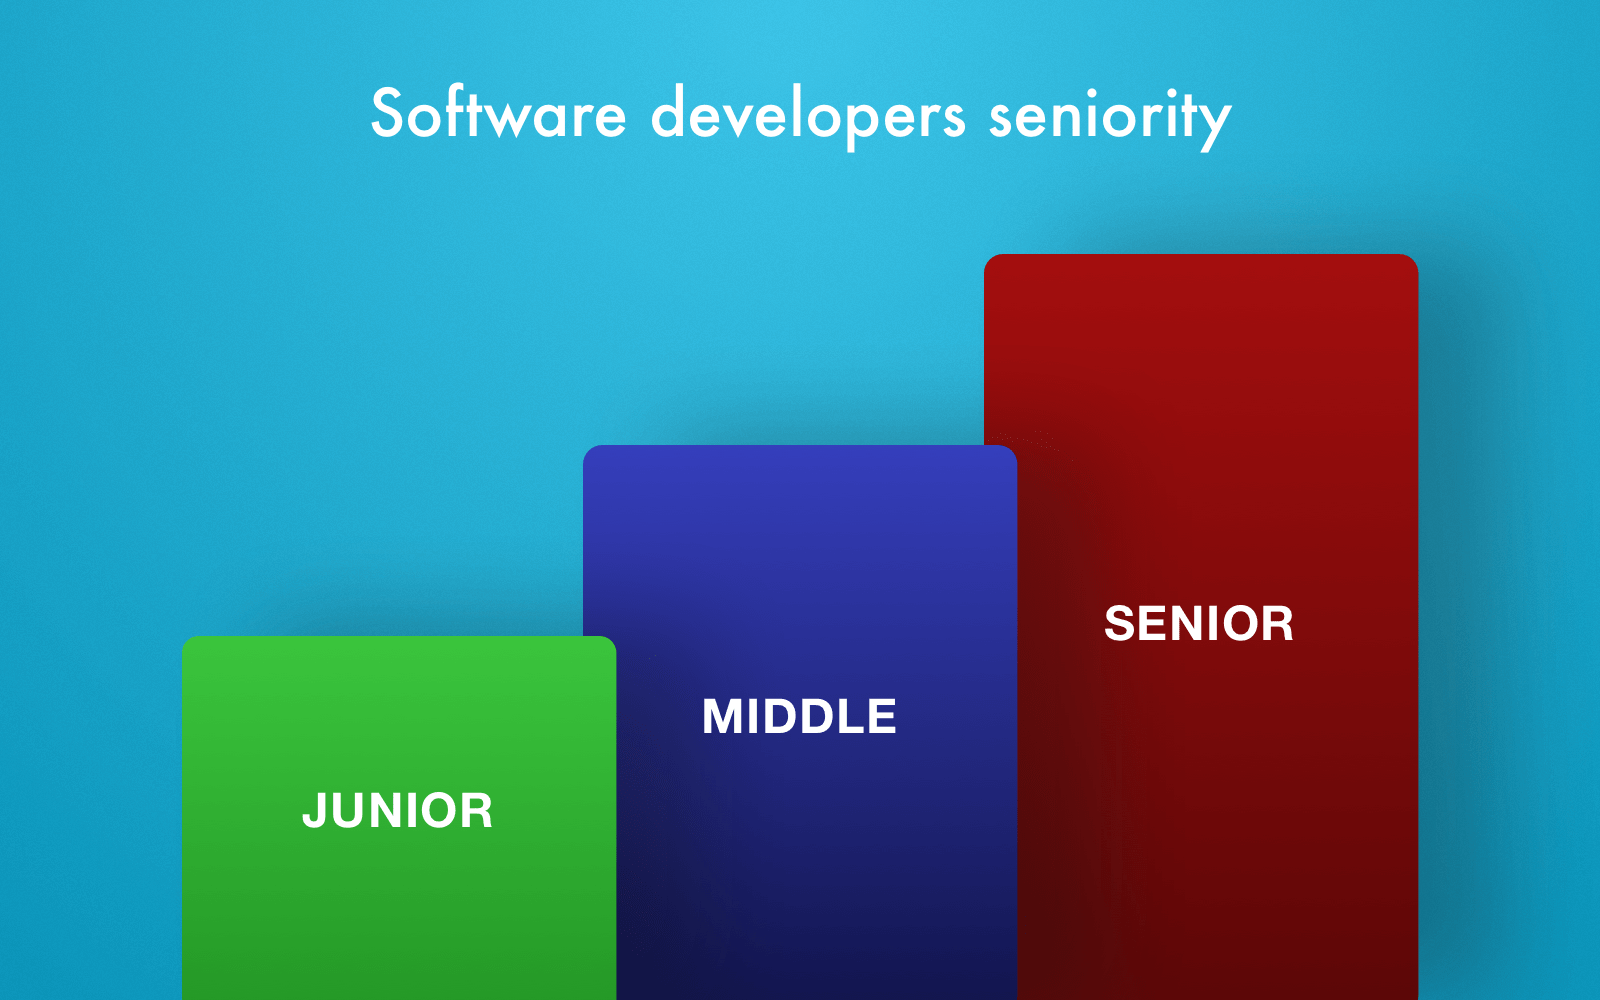 Software dev seniority